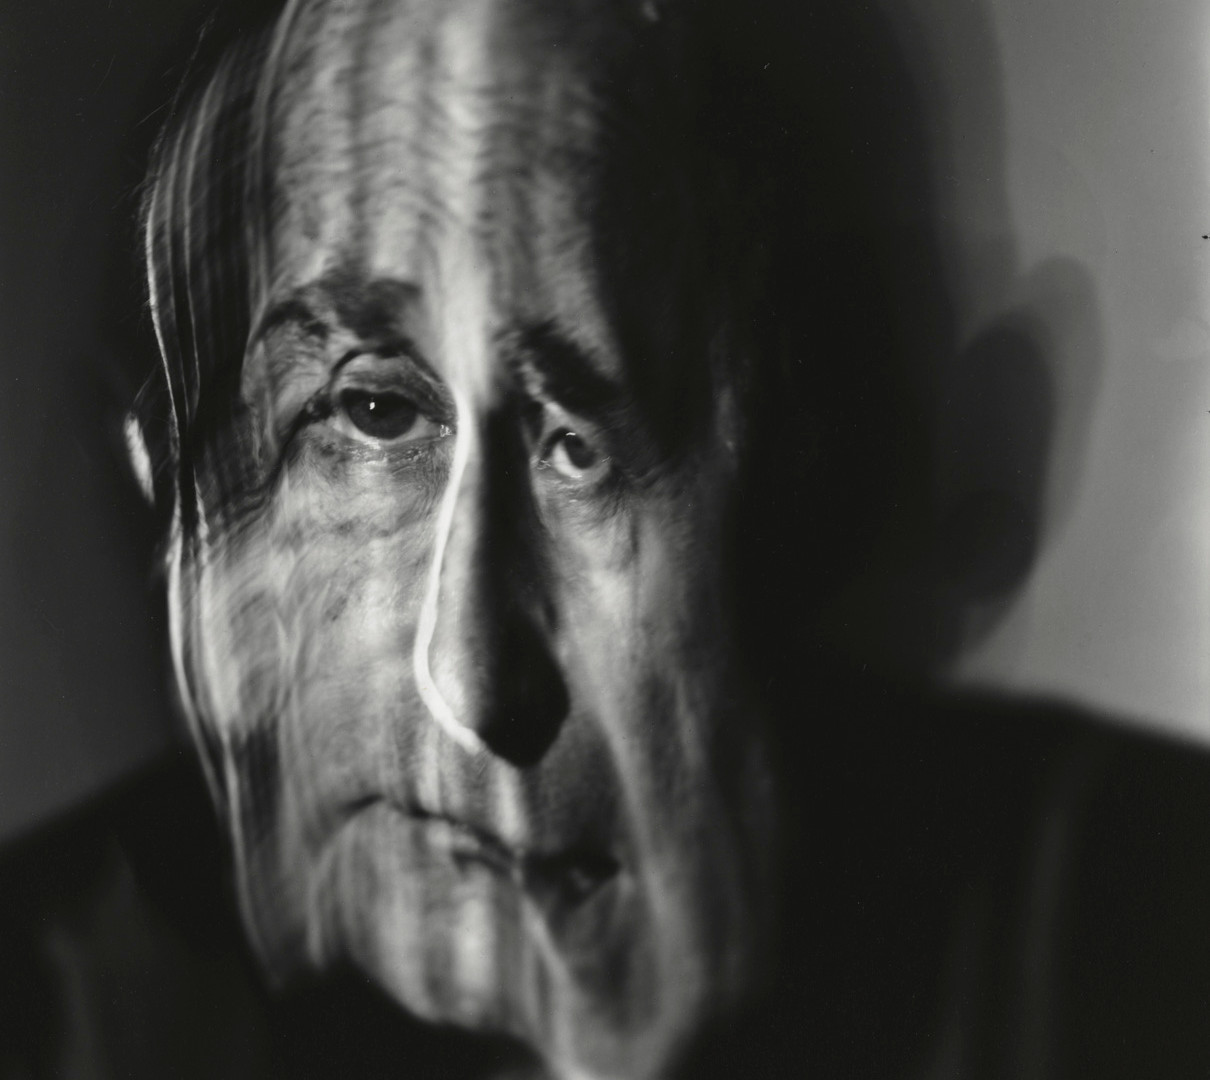 Irving Penn, IP, Photograph of Self (G), New York, 1993